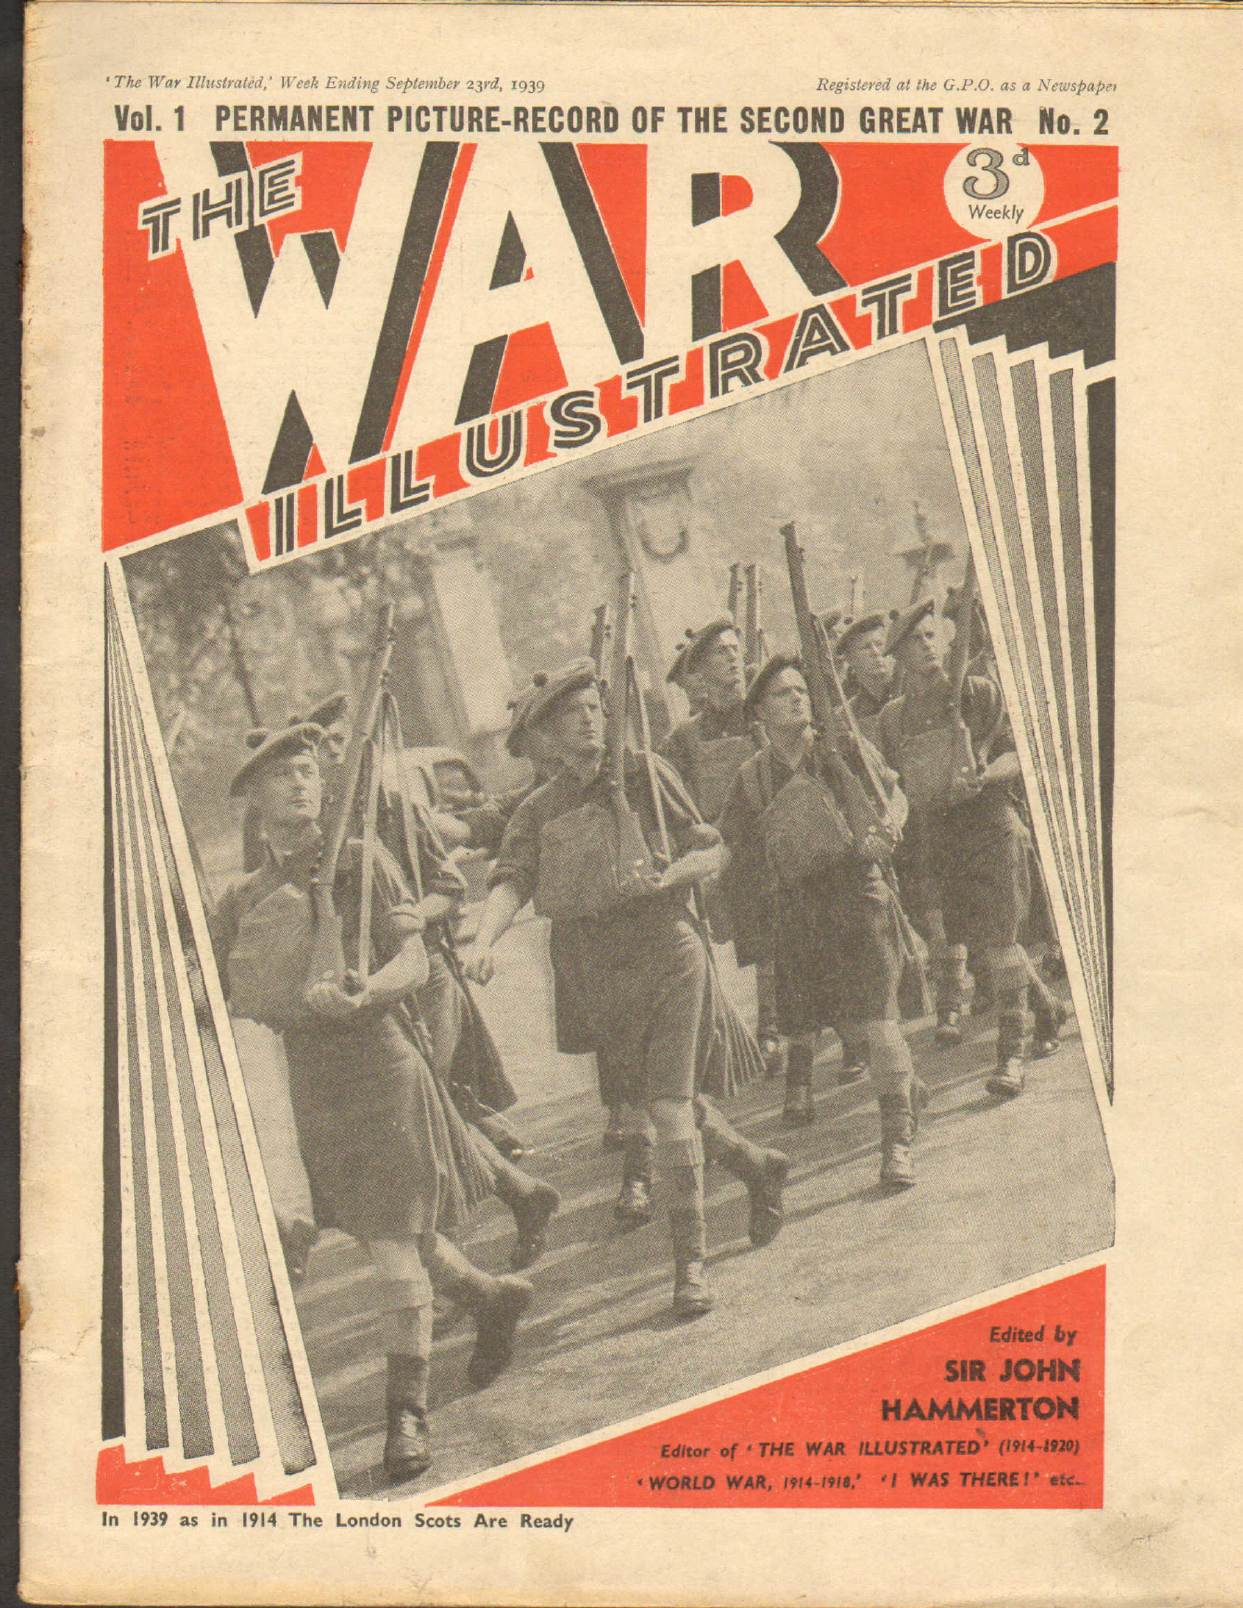 View individual pages of 'The War Illustrated  No 2 Vol 1 September 23rd 1939'